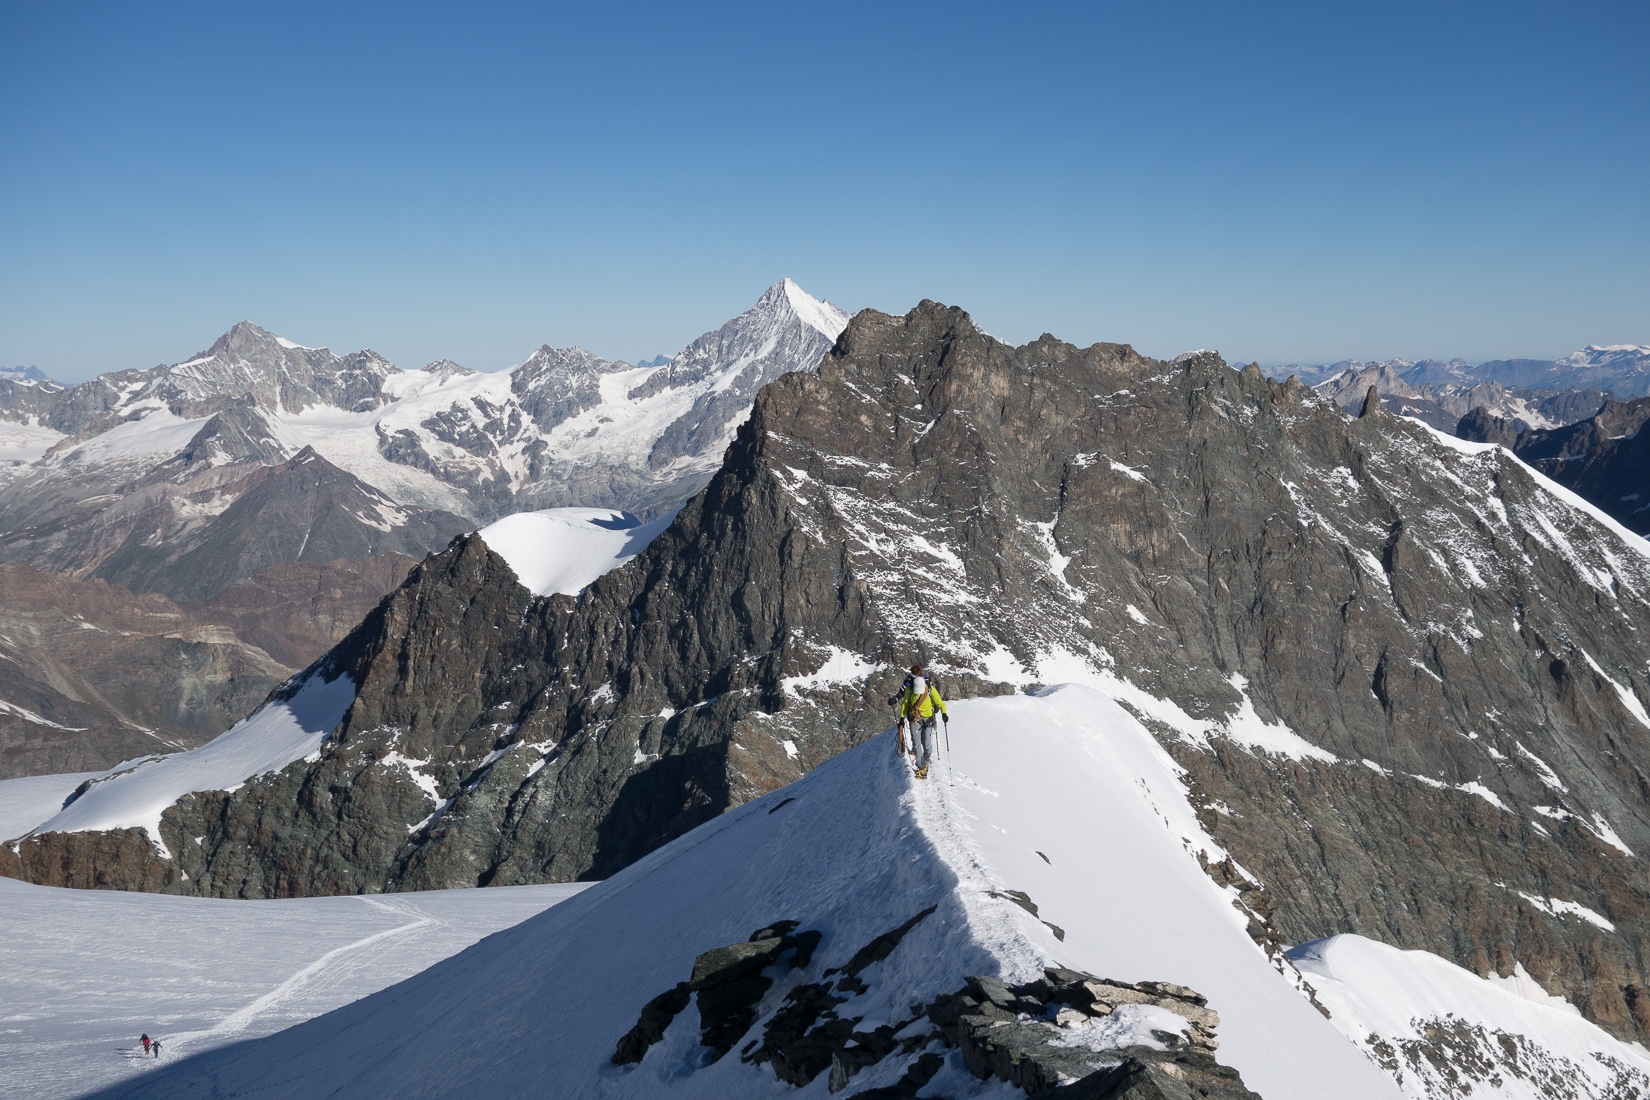 Summit arete of the Strahlhorn